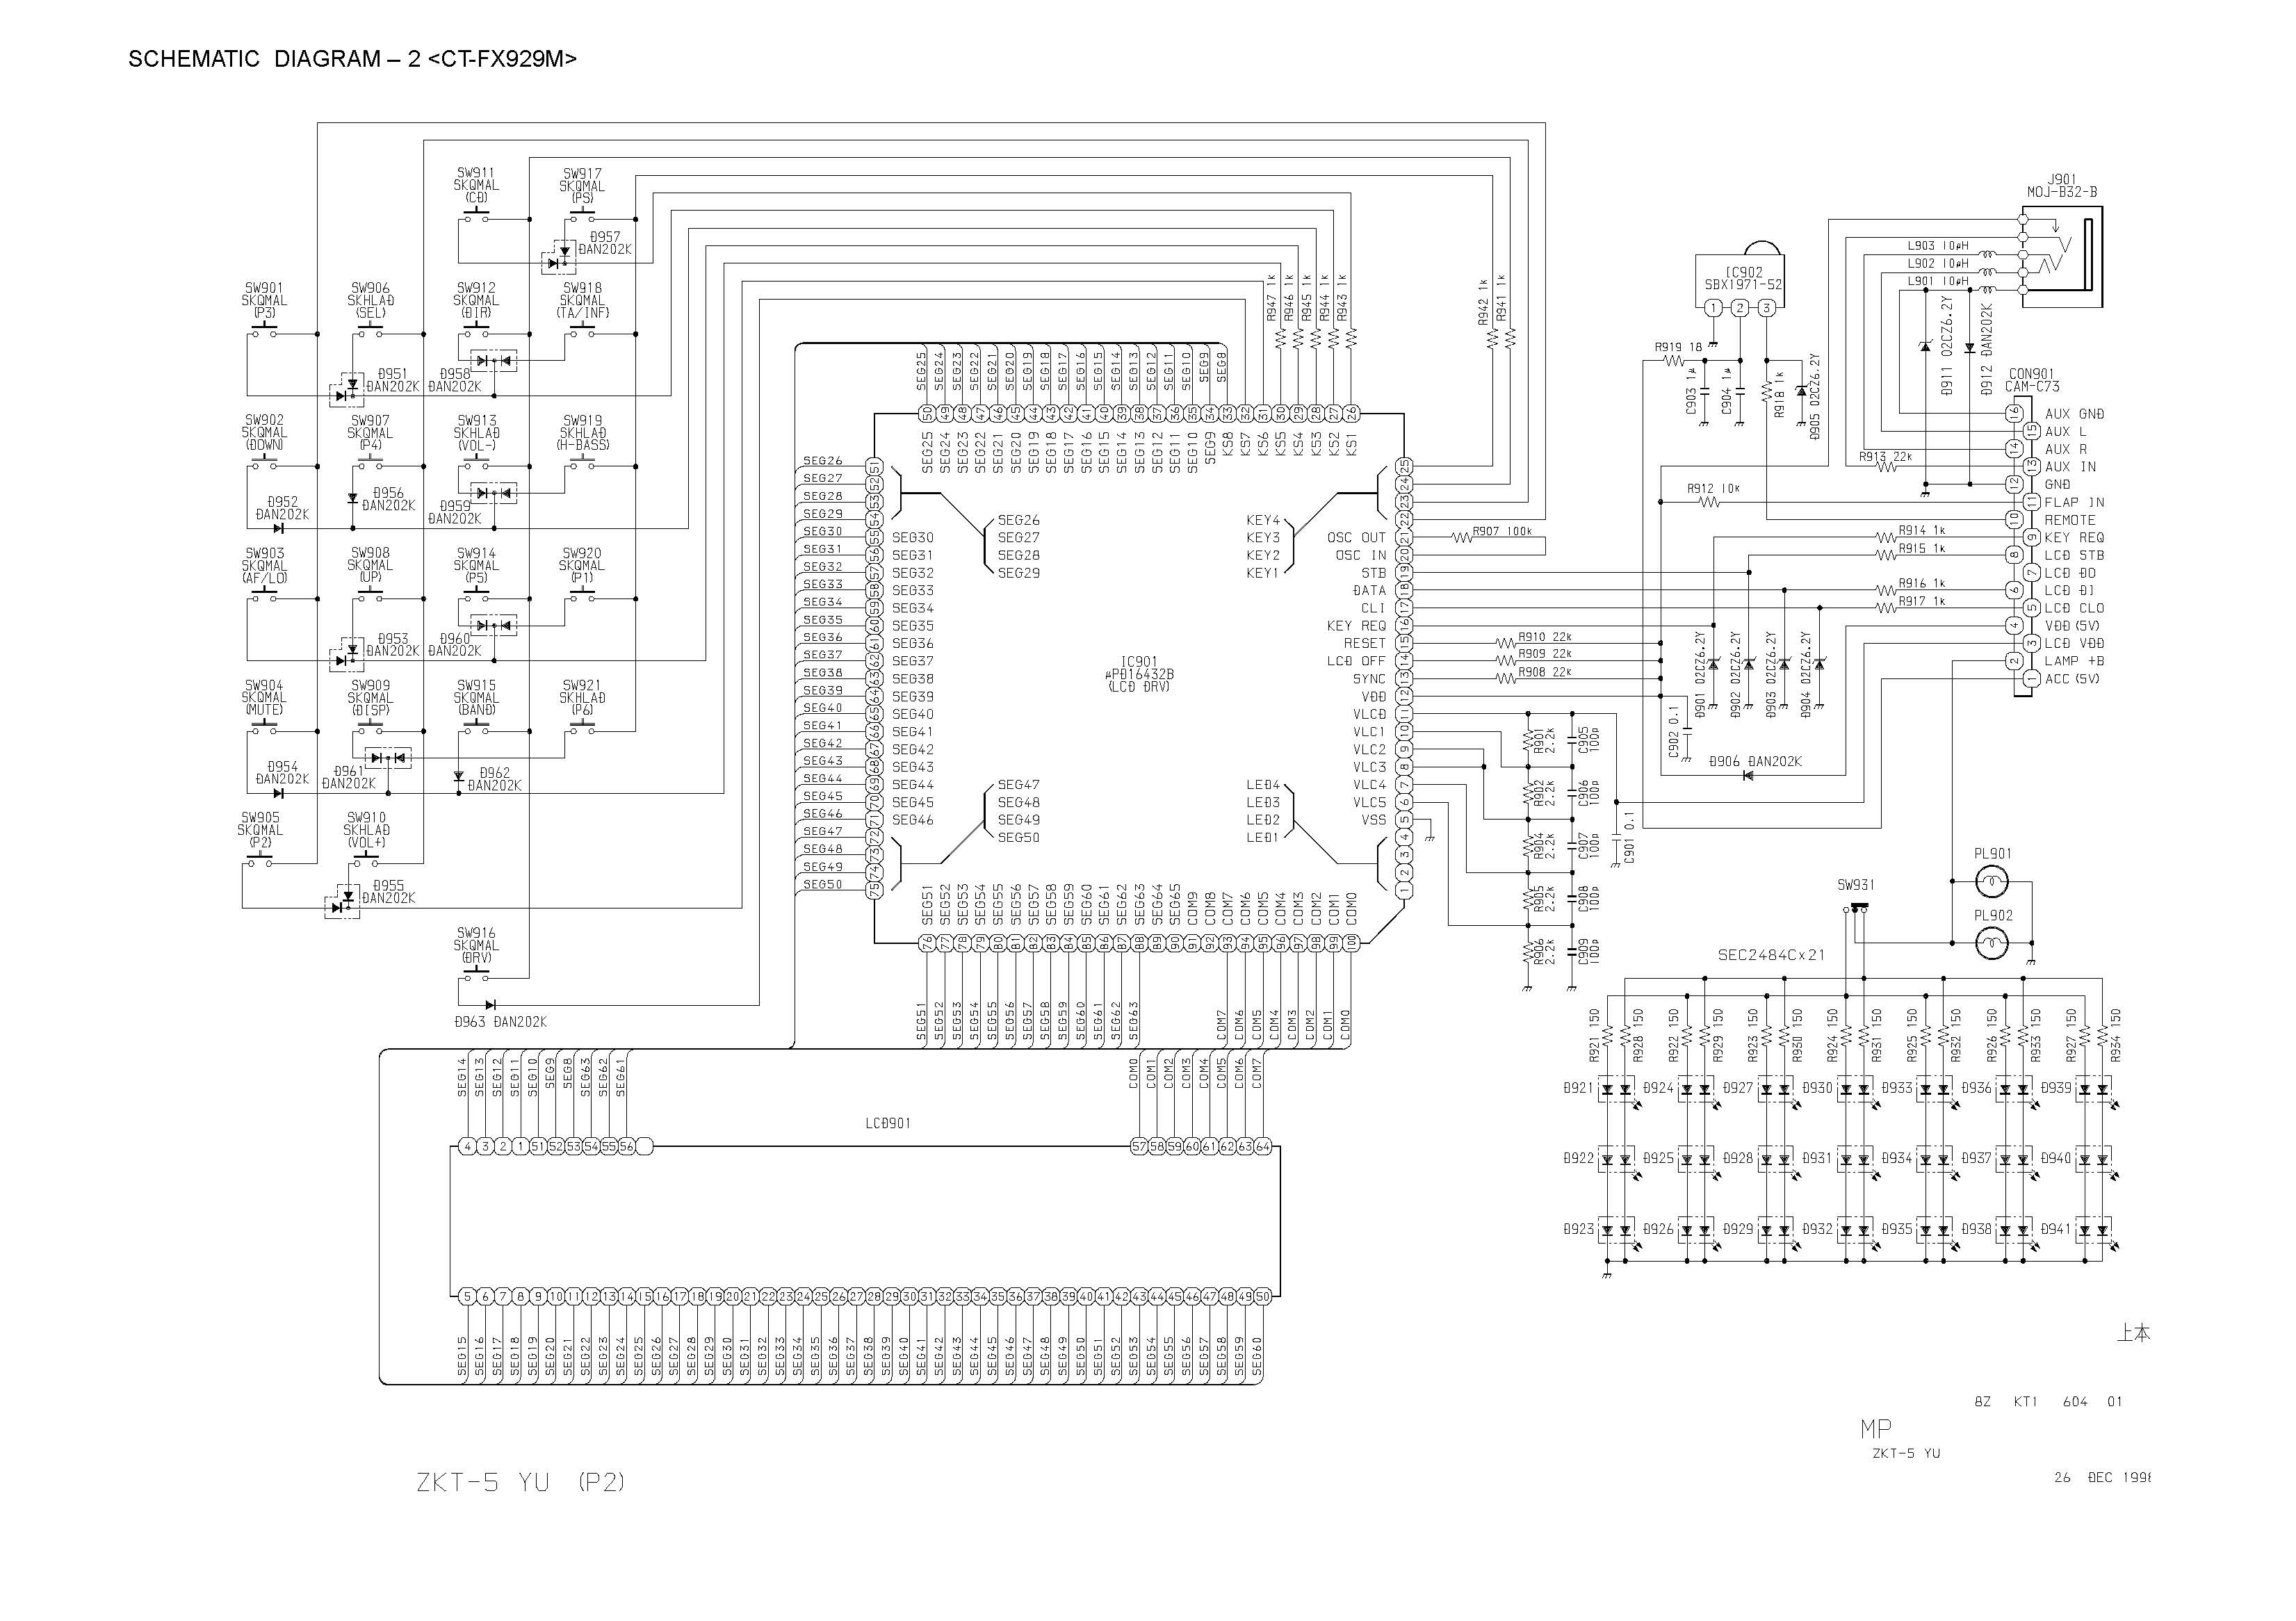 aiwa ct-fx719 schematic diagram  main    front  in pdf format